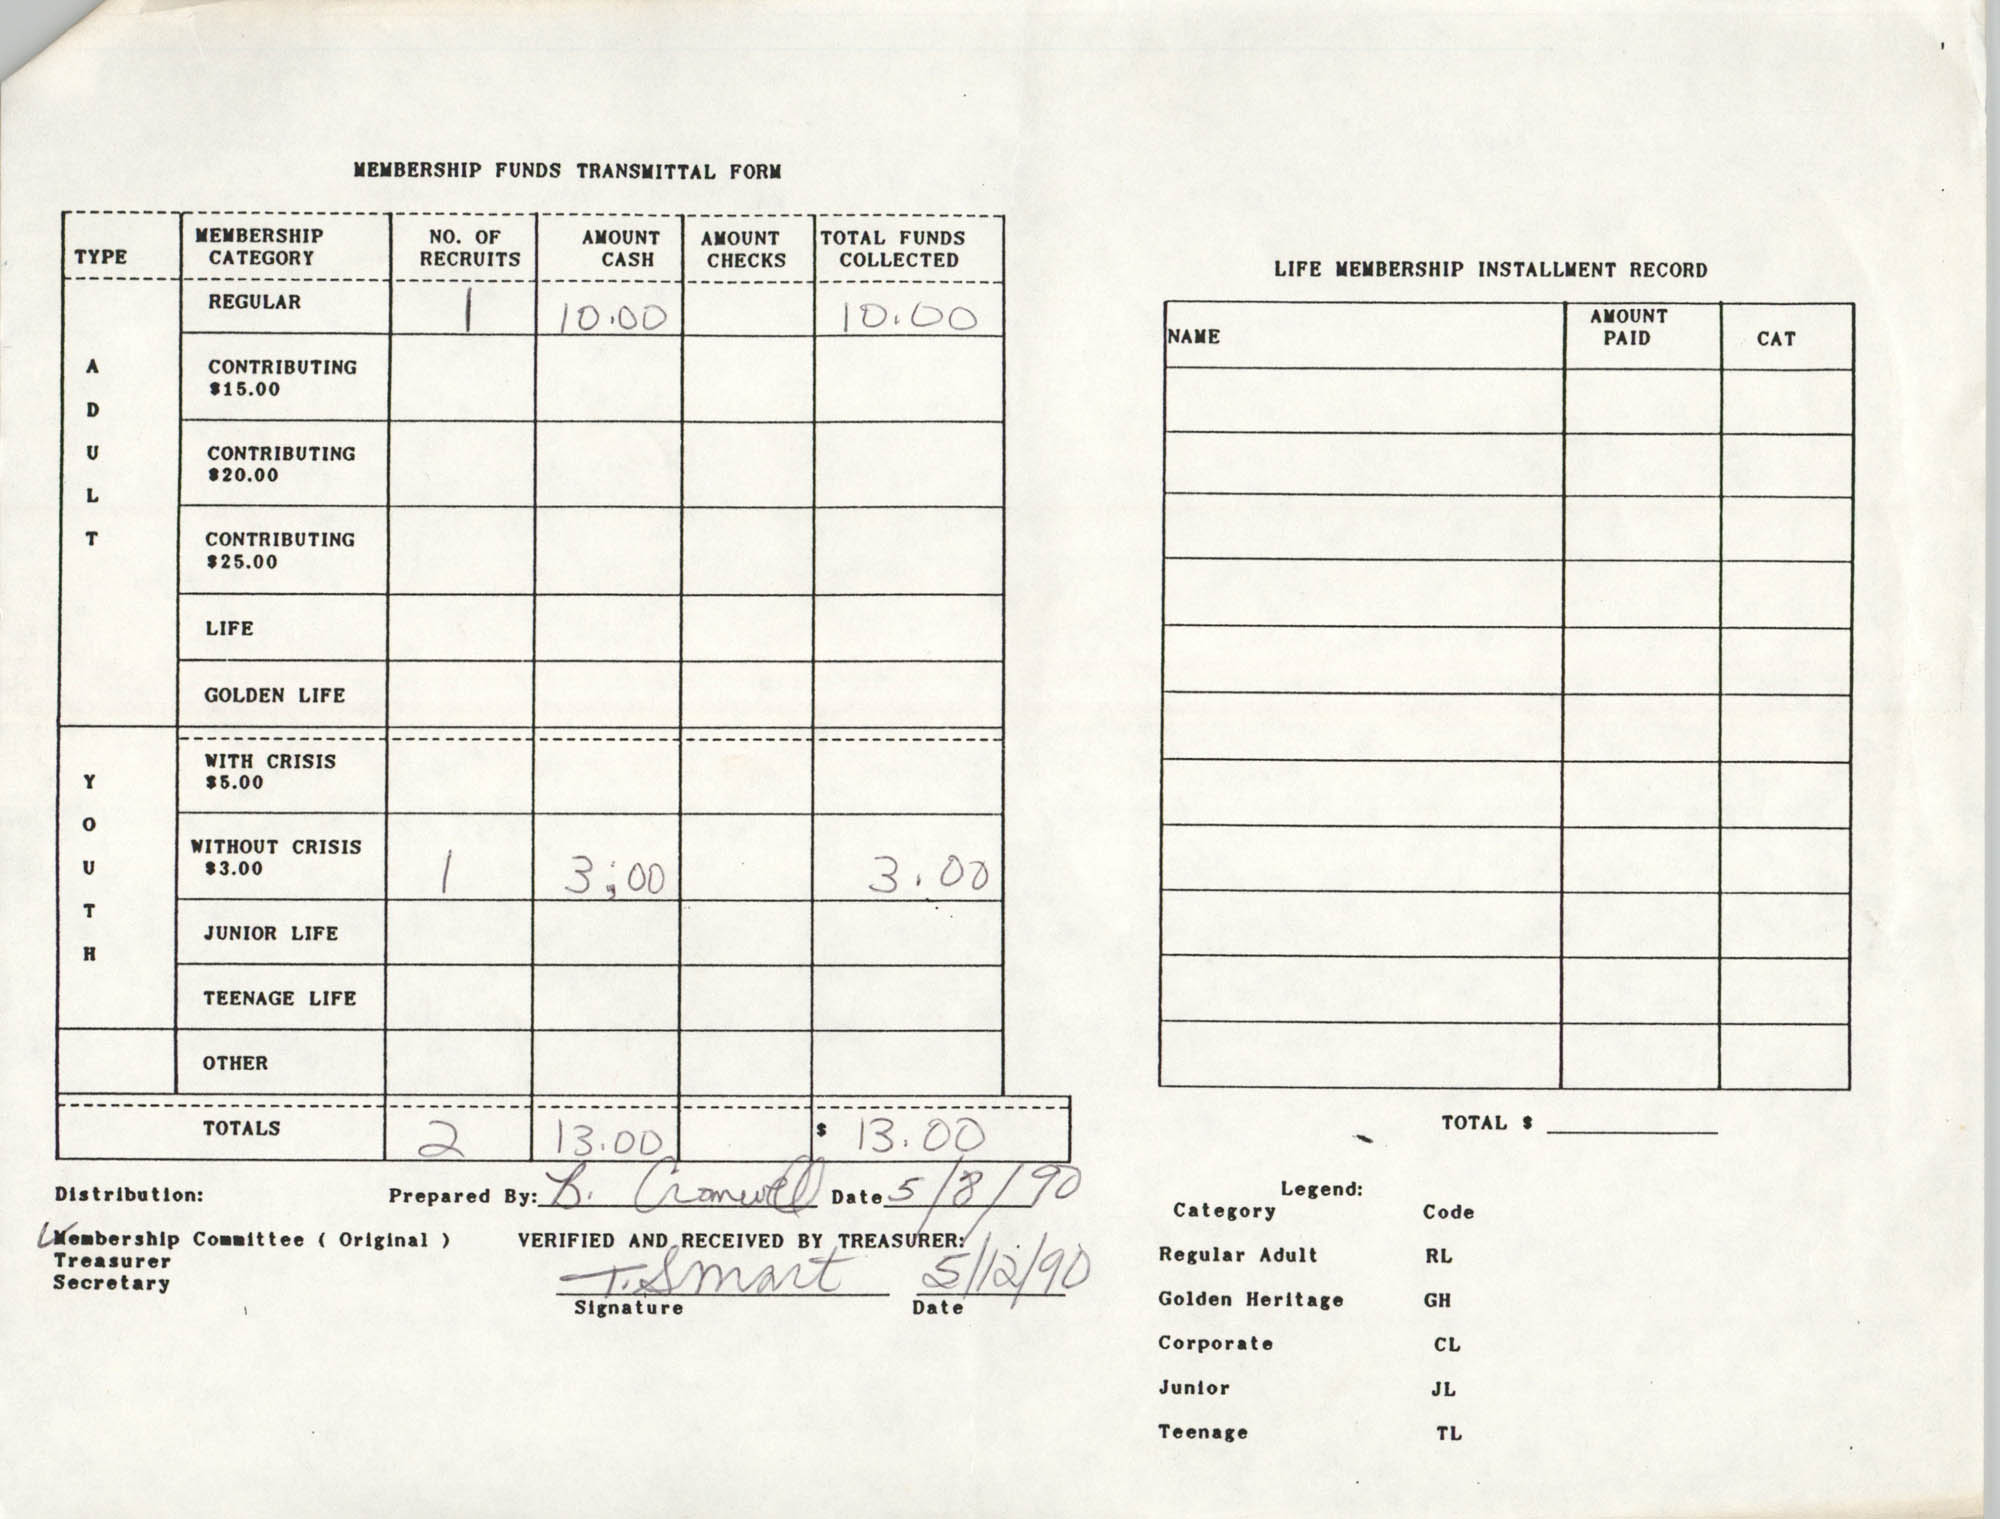 Charleston Branch of the NAACP Funds Transmittal Forms, May 1990, Page 2